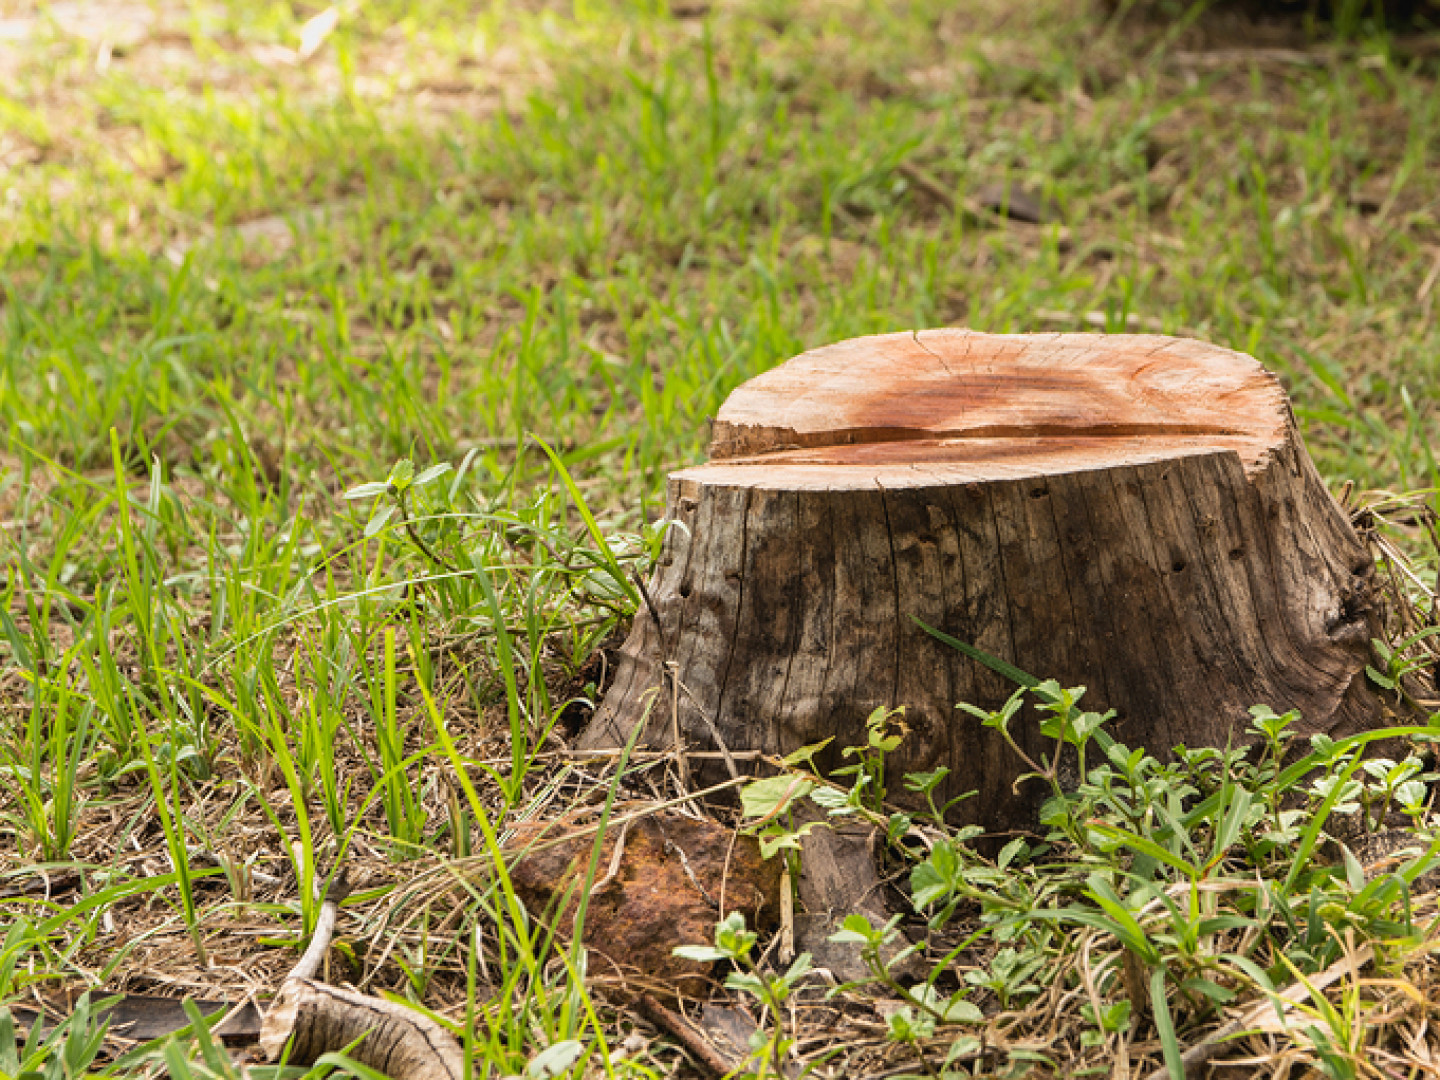 Rid Your Yard of Unsightly Tree Stumps